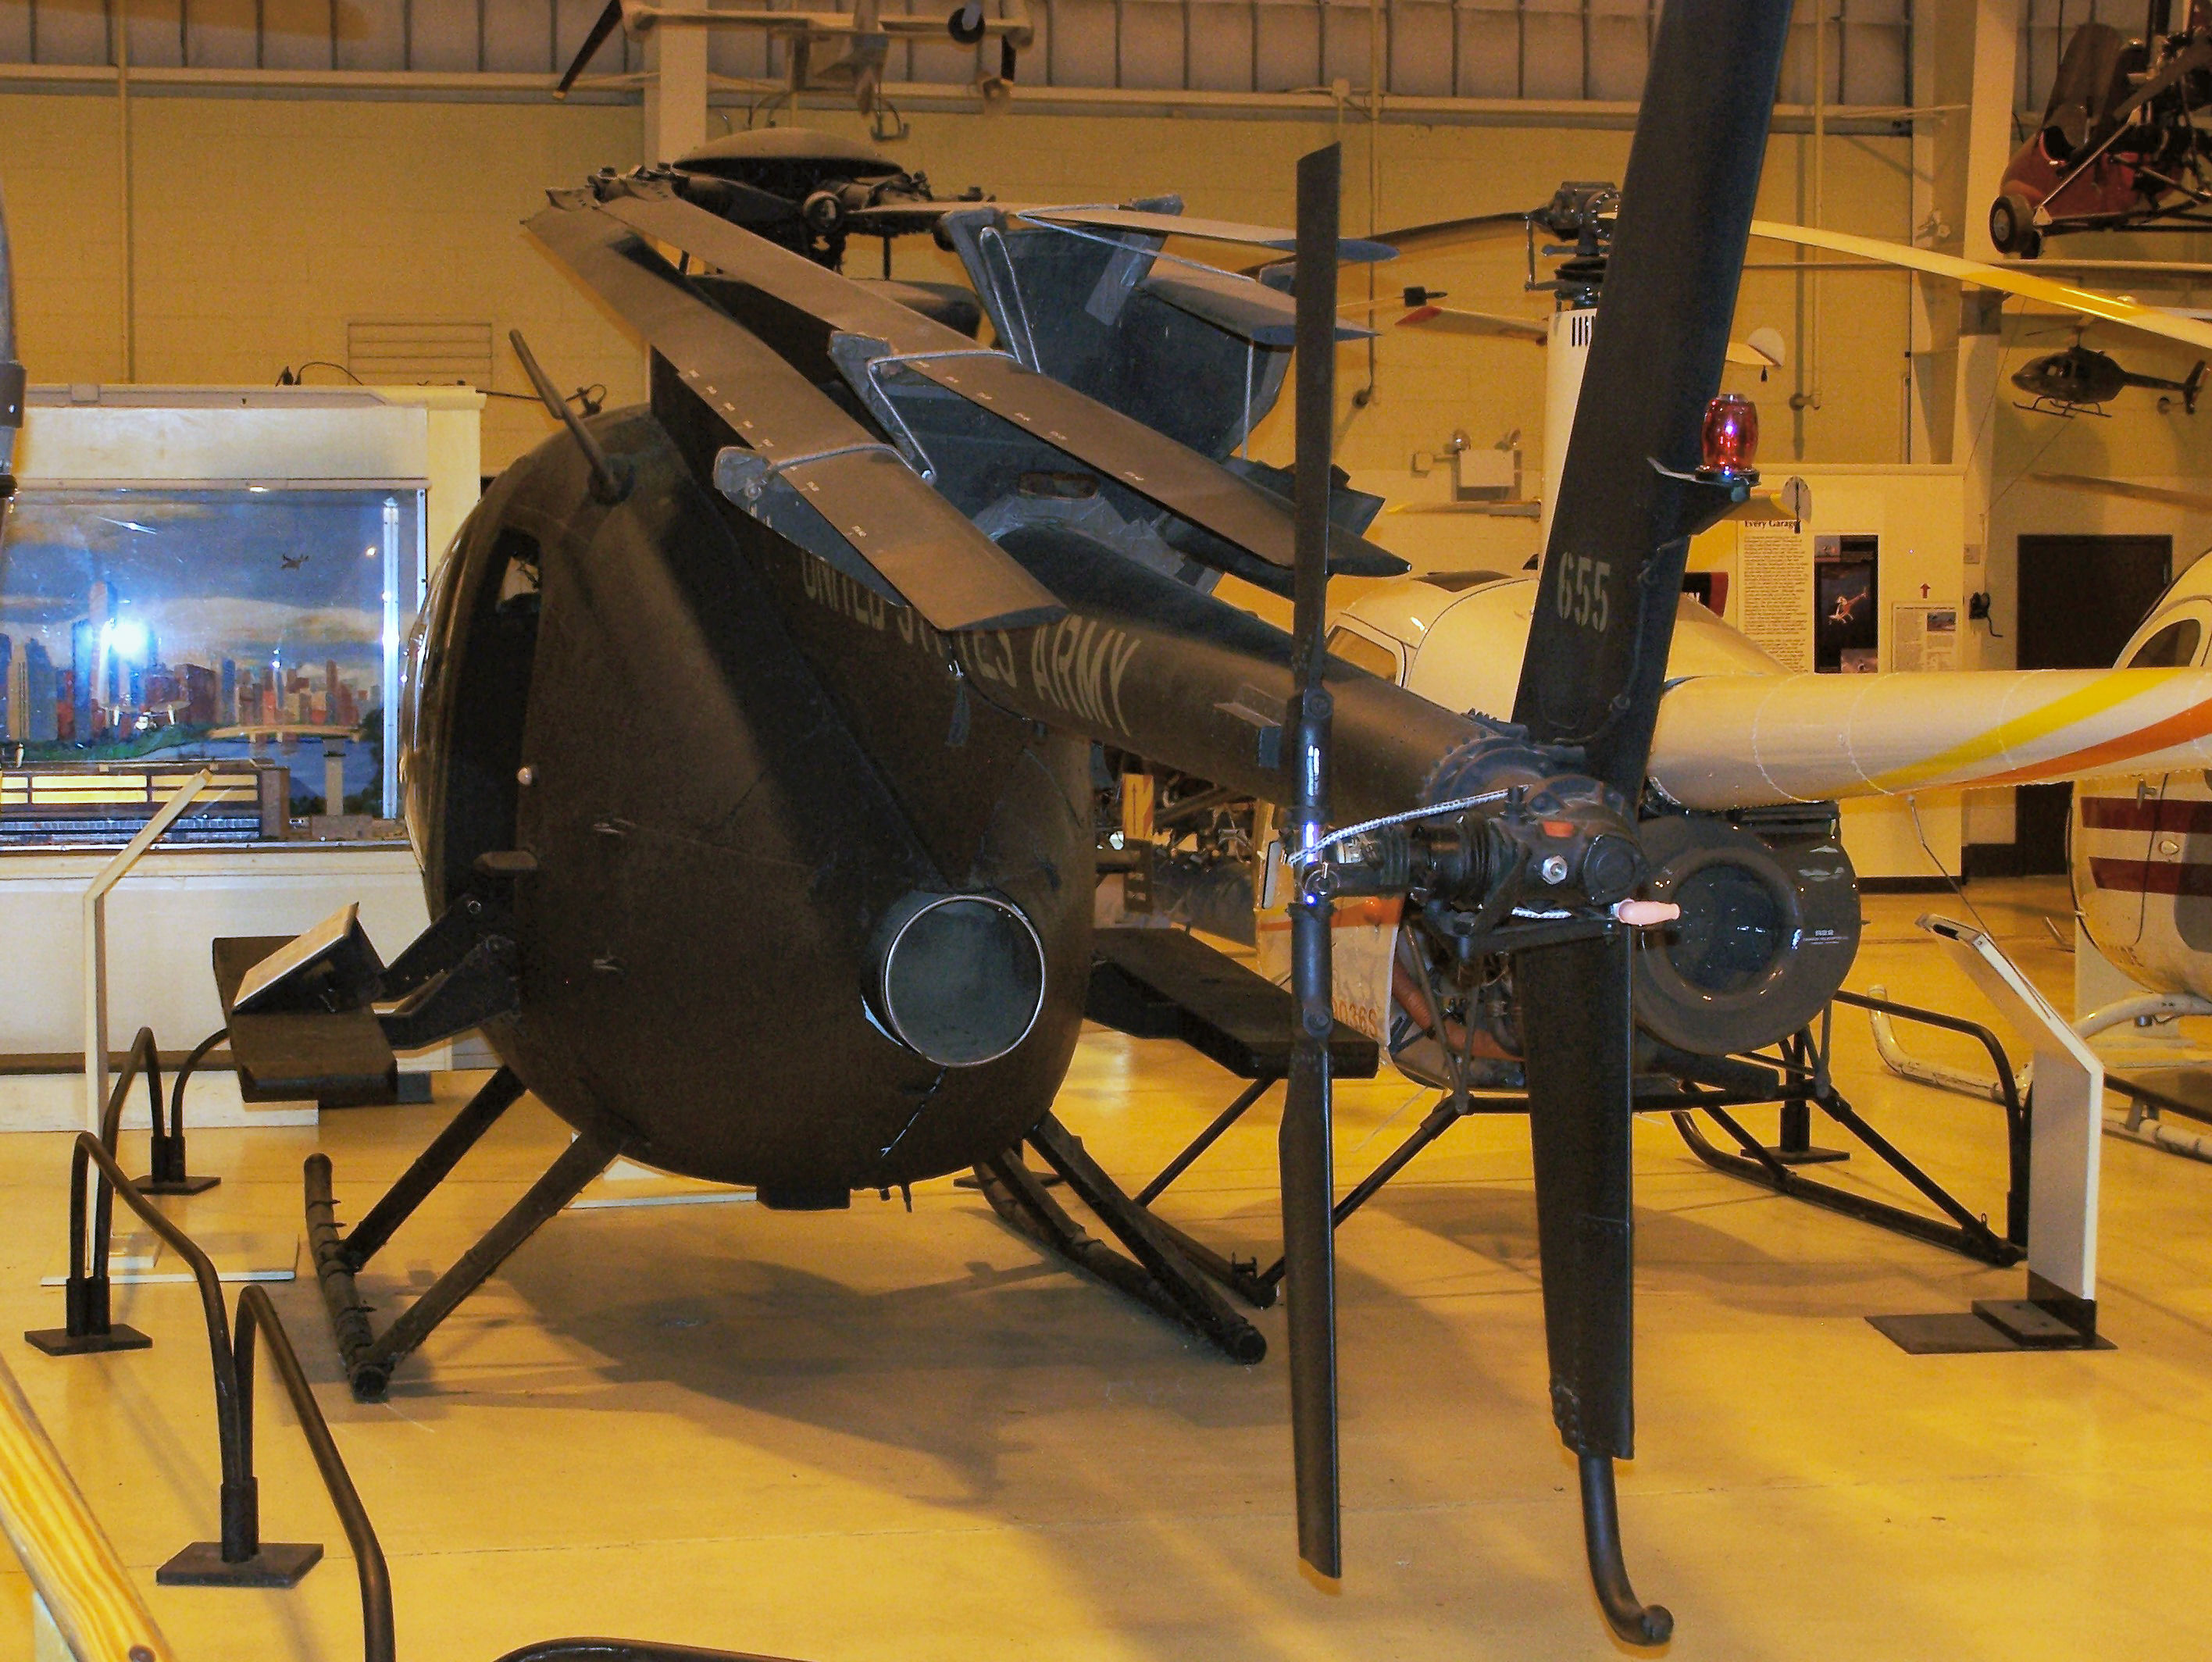 helicopter museum west chester pa with Index on 1334 furthermore Attraction review G53951 D264224 Reviews Qvc studio park West chester pennsylvania besides Index as well Index furthermore Oh 13 bell 47.